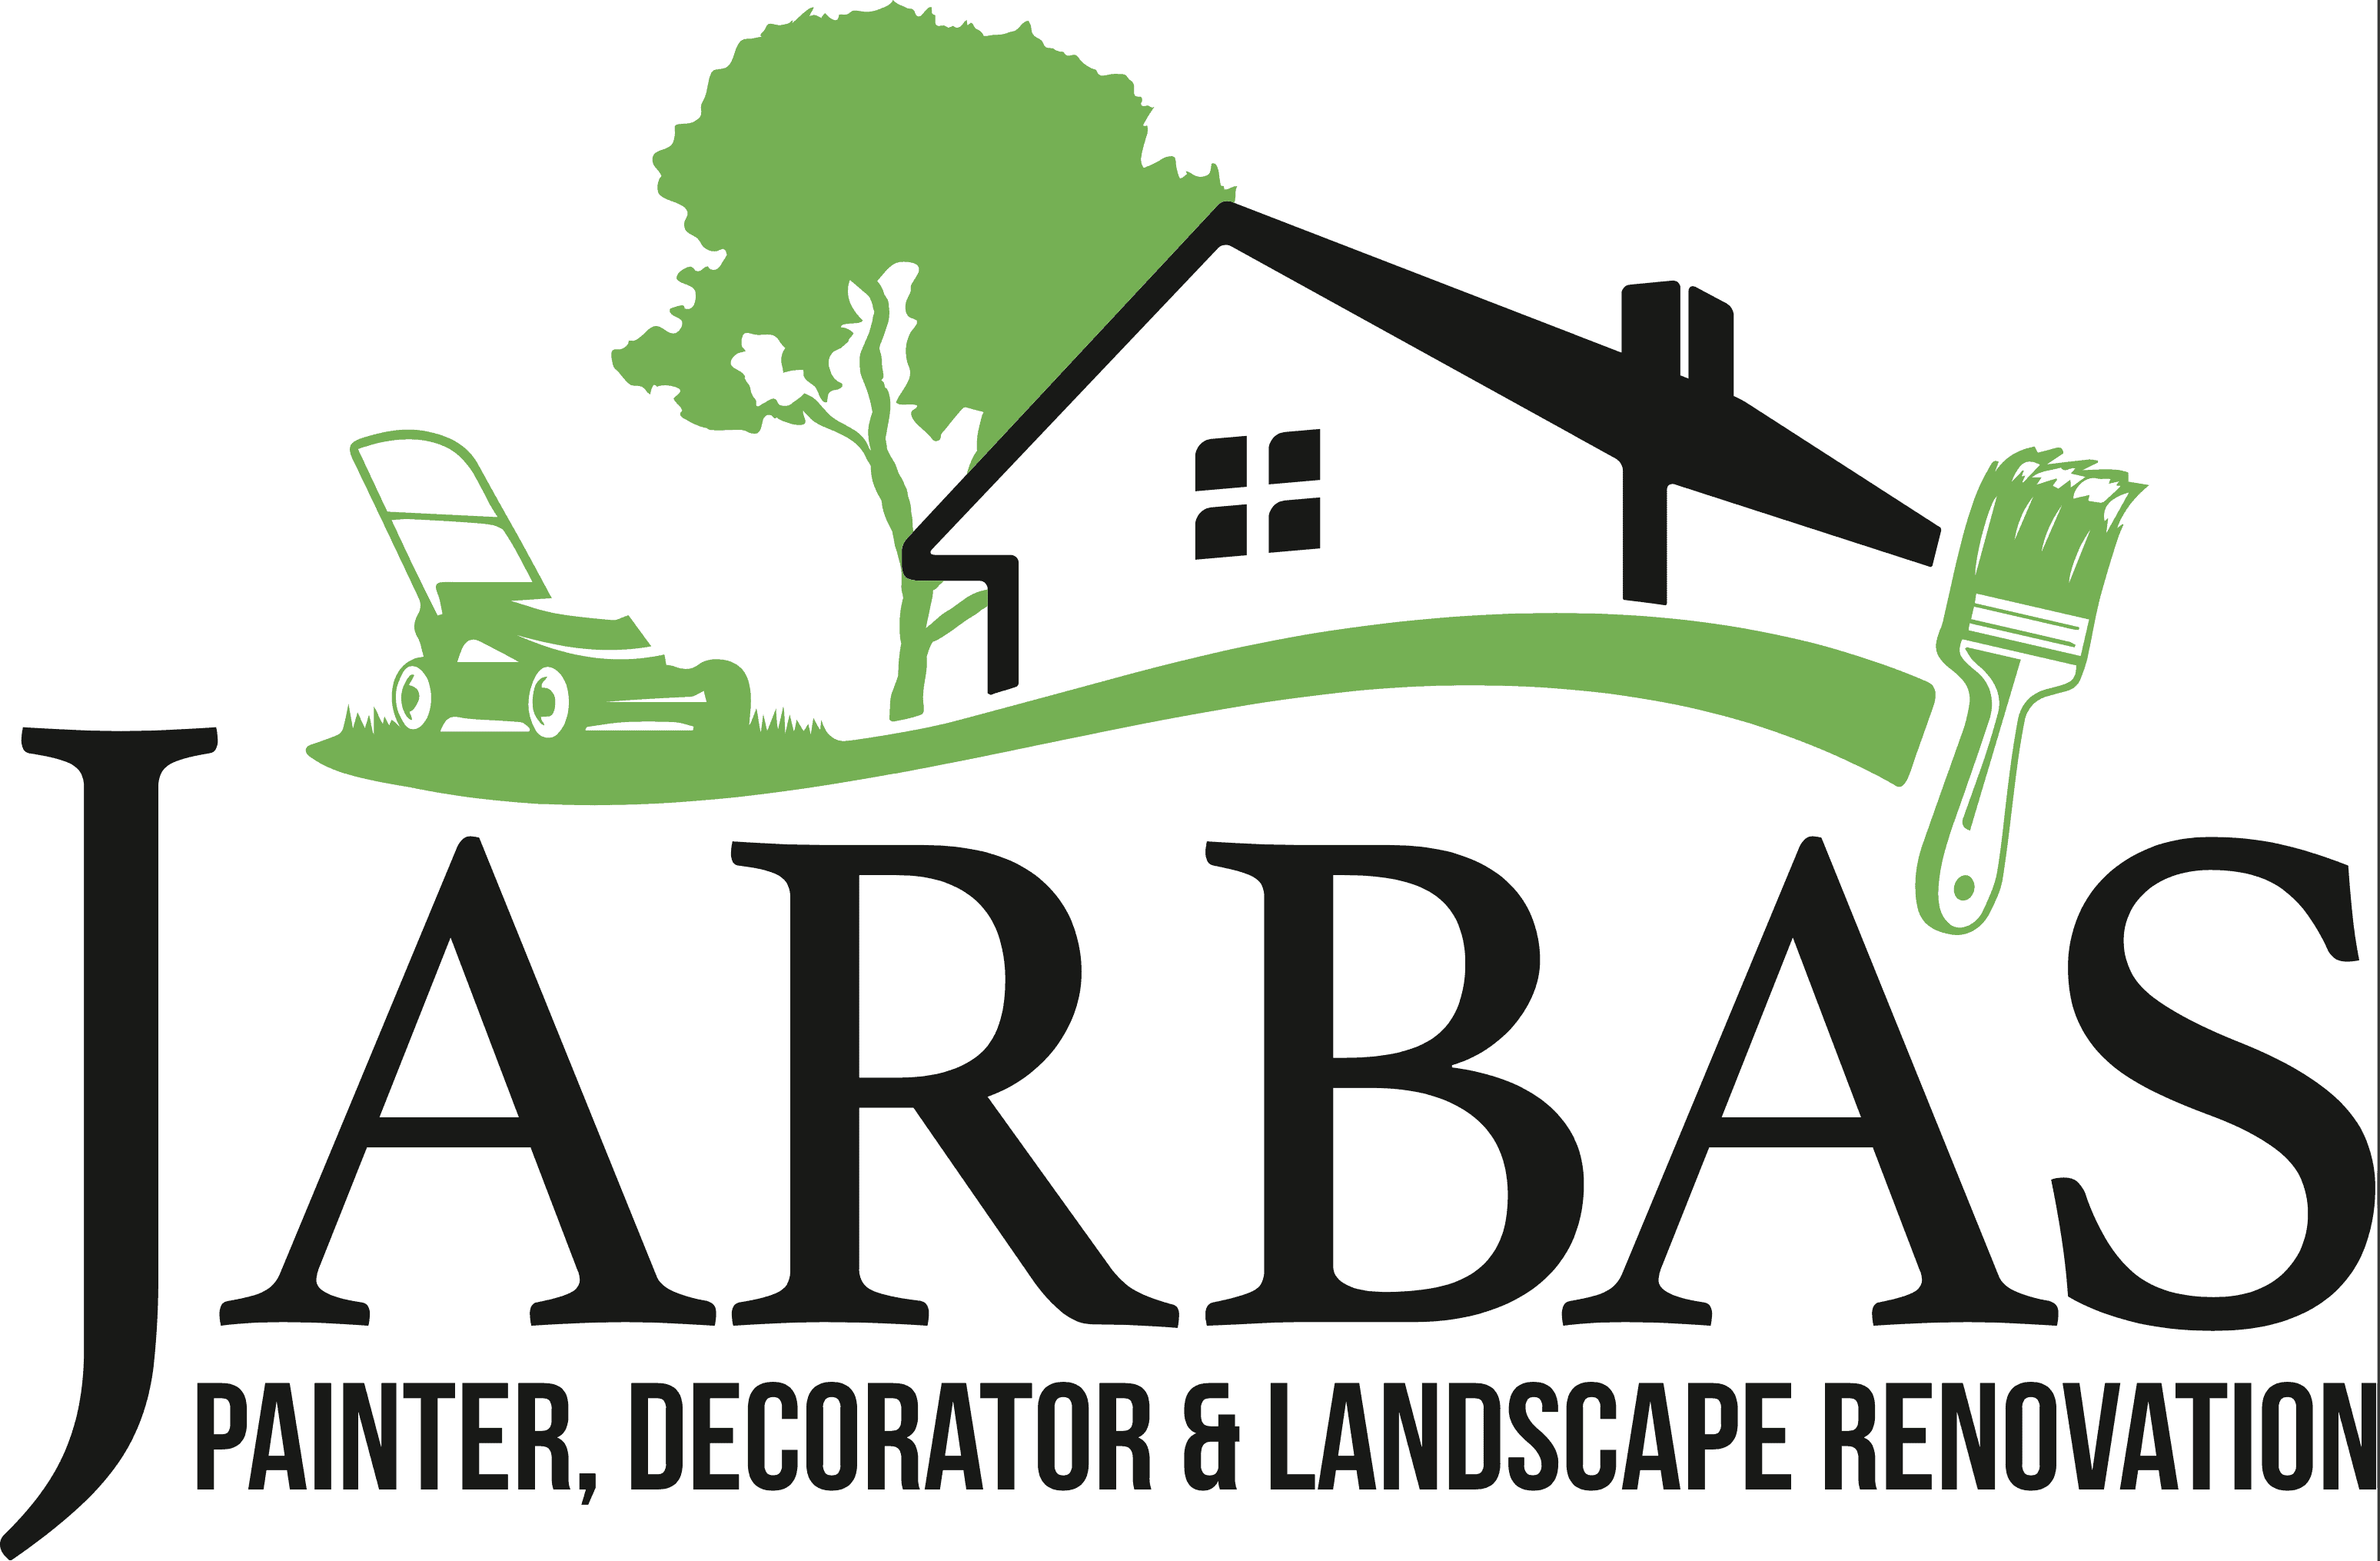 Jarbas Ltd Logo